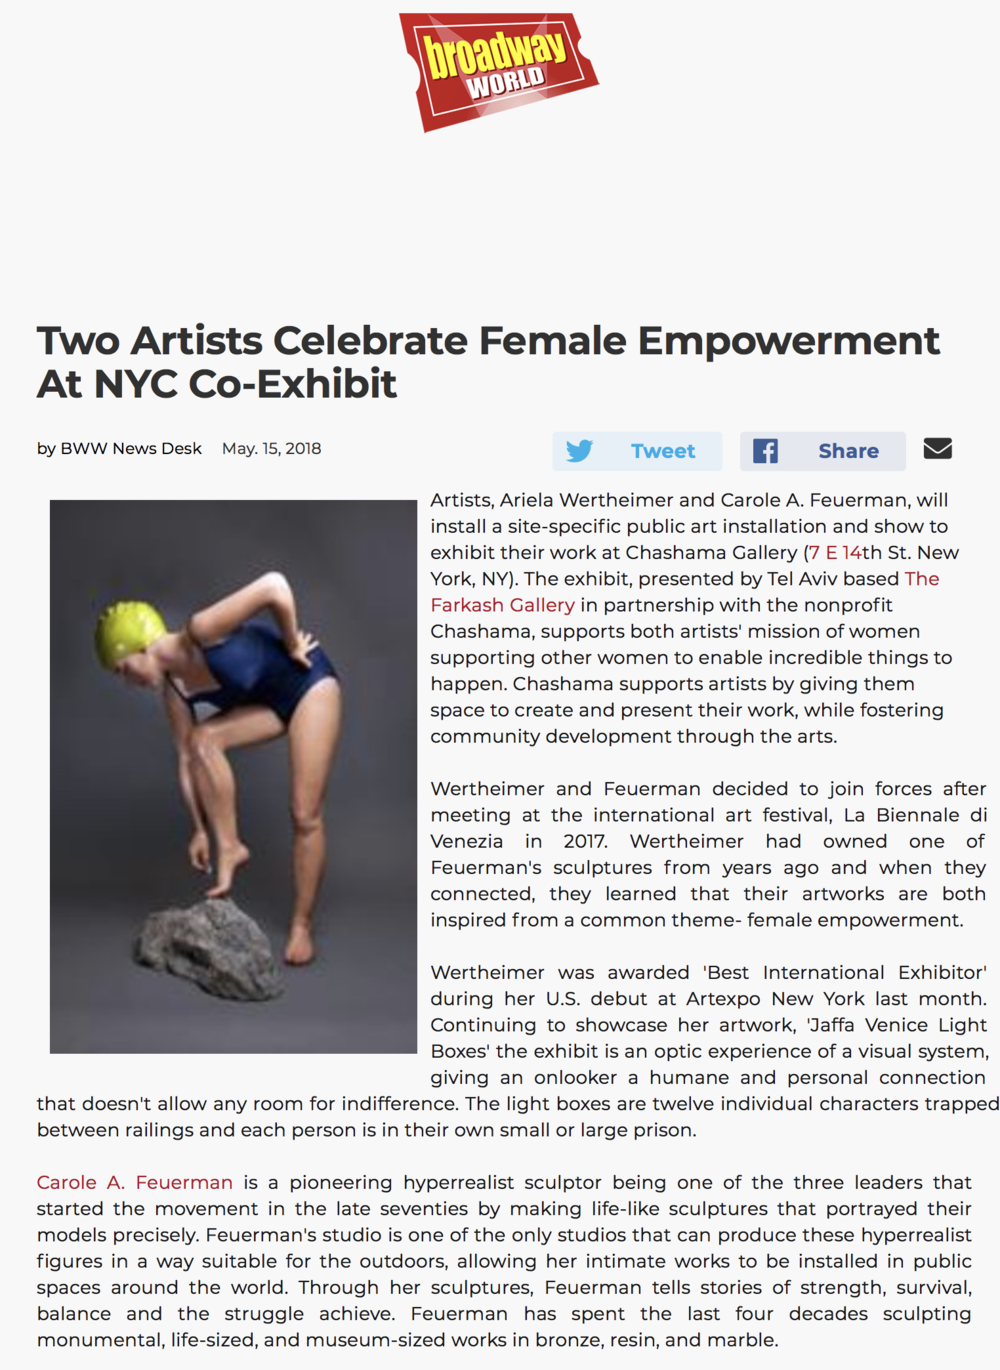 Two Artists Celebrate Female Empowerment At NYC Co-Exhibit